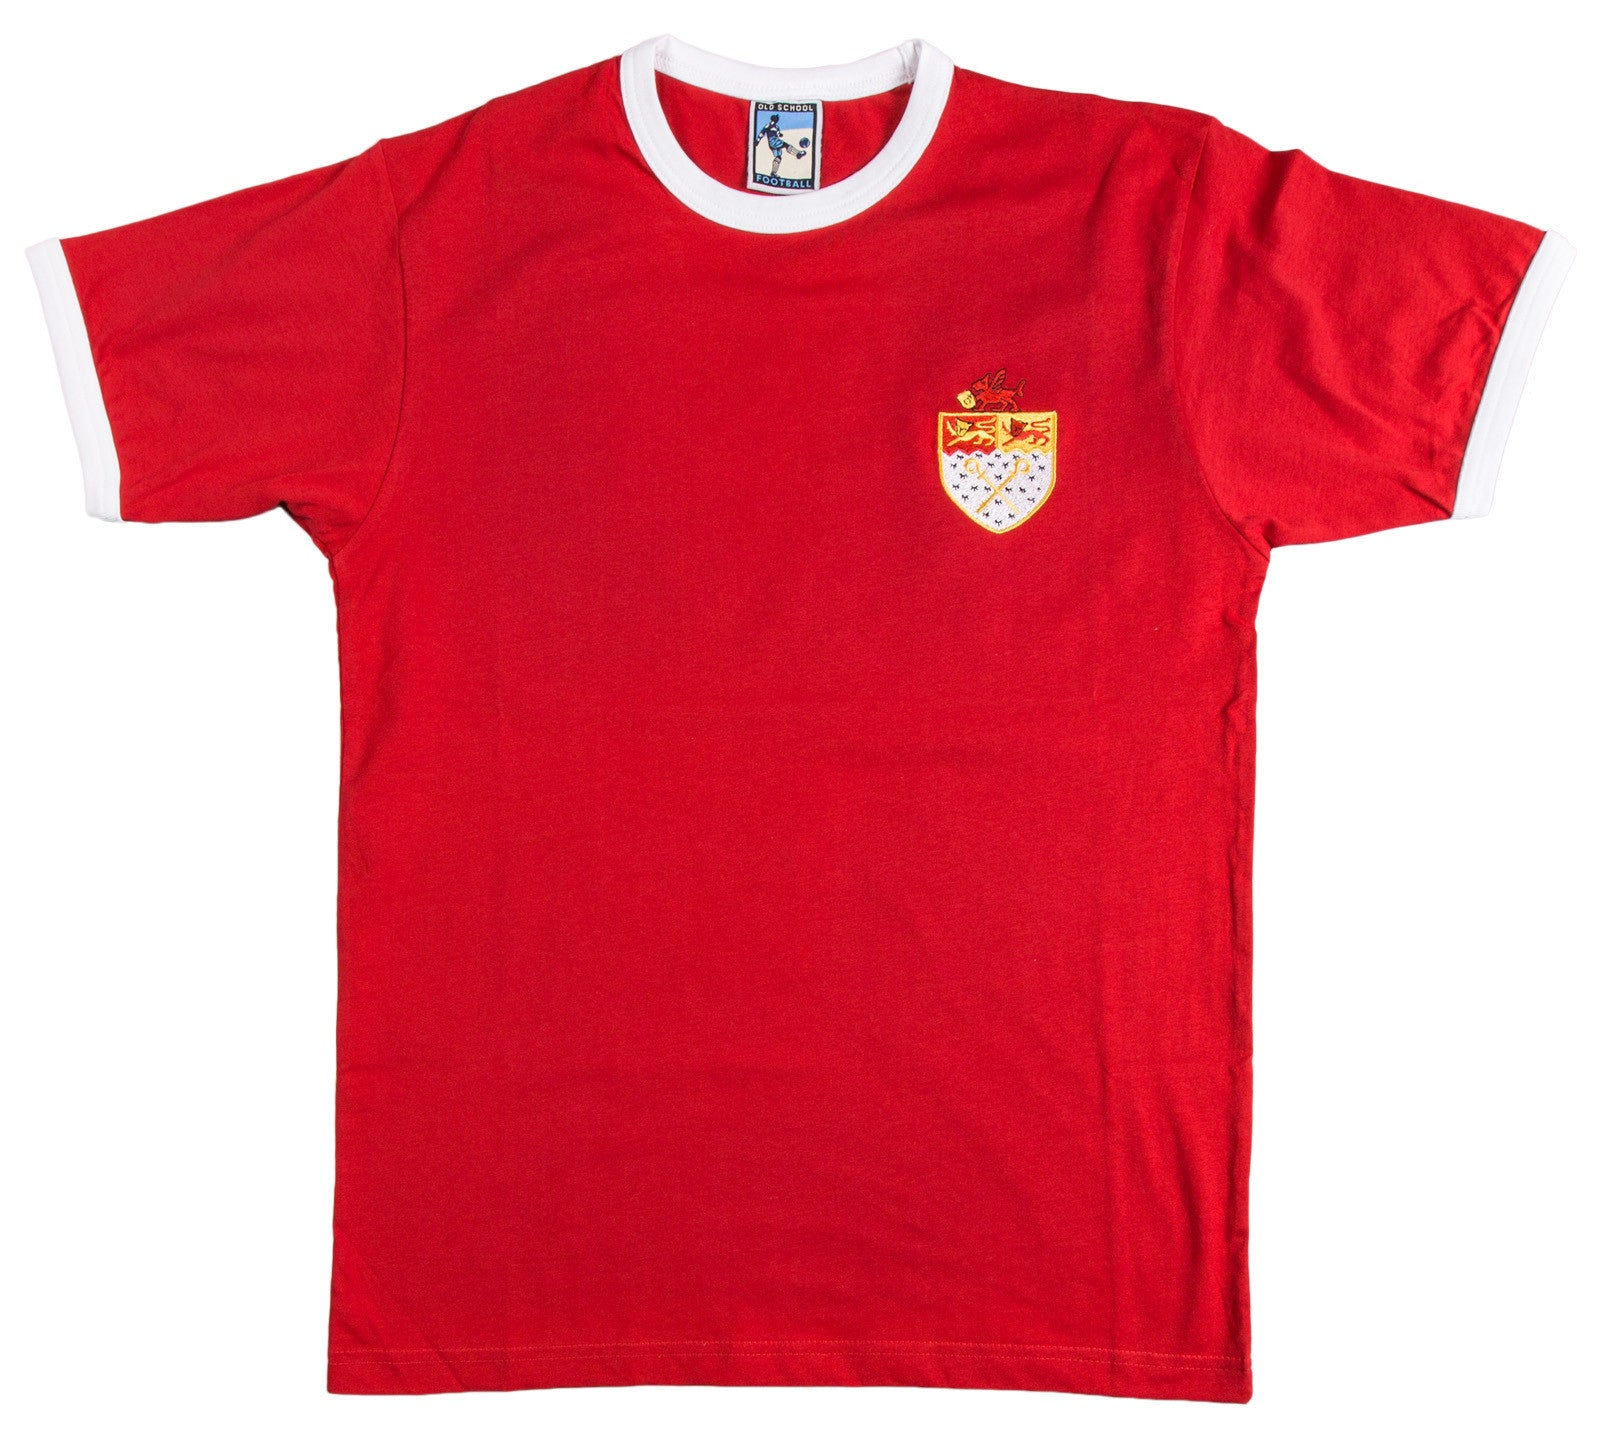 Wrexham Retro Football T Shirt 1960s & 1970s - Old School Football